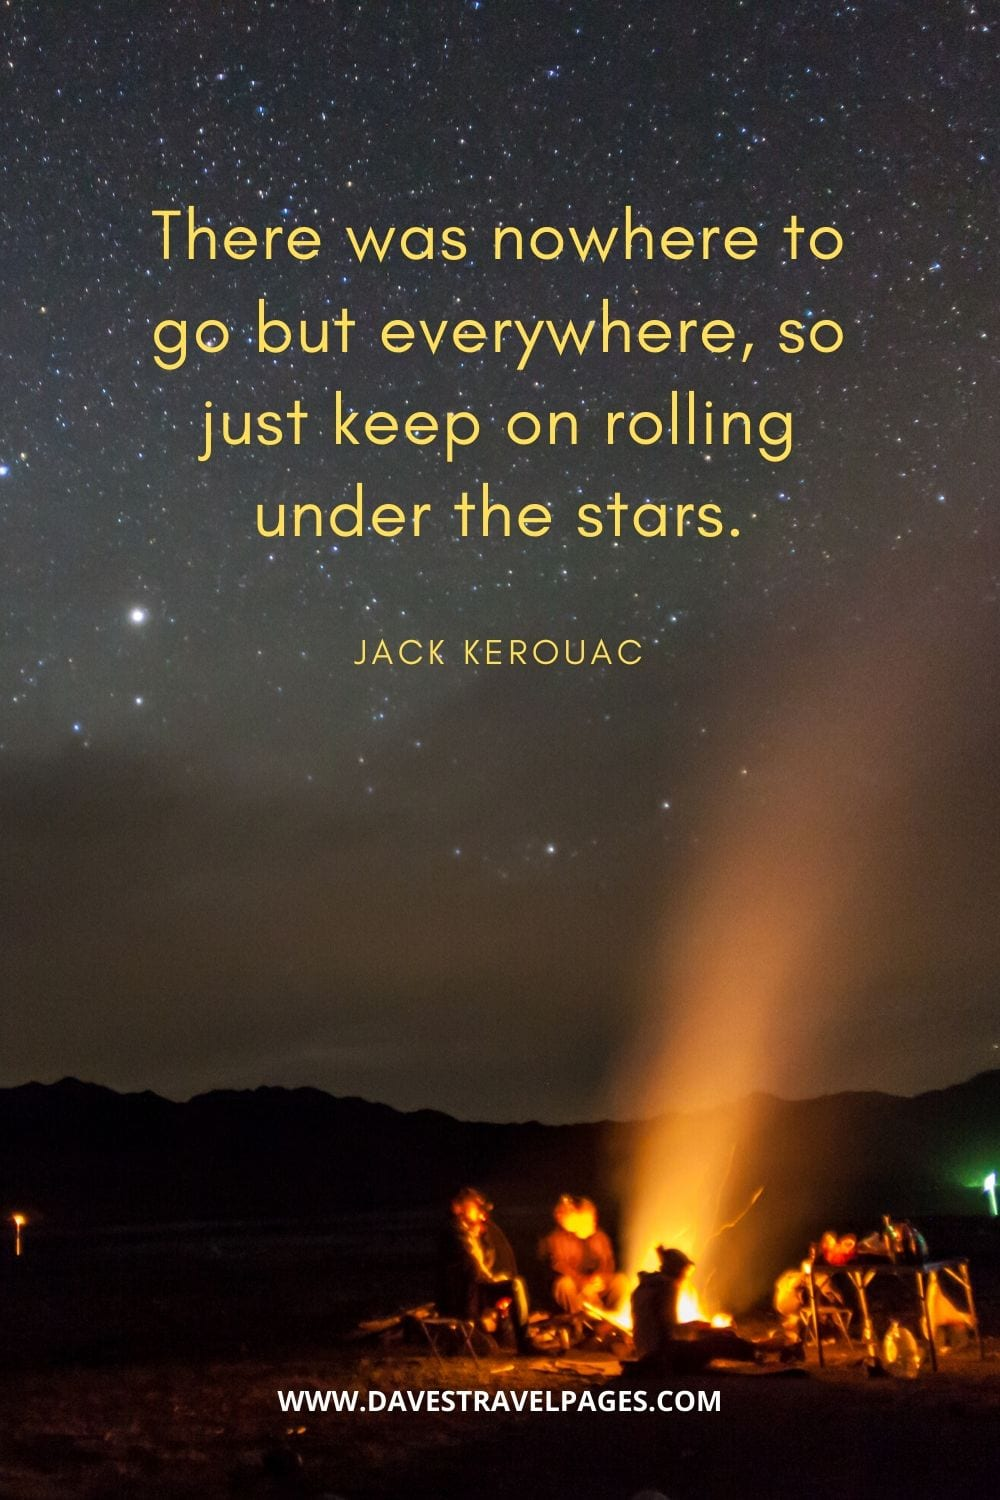 """There was nowhere to go but everywhere, so just keep on rolling under the stars."" - From On The Road by Jack Kerouac"